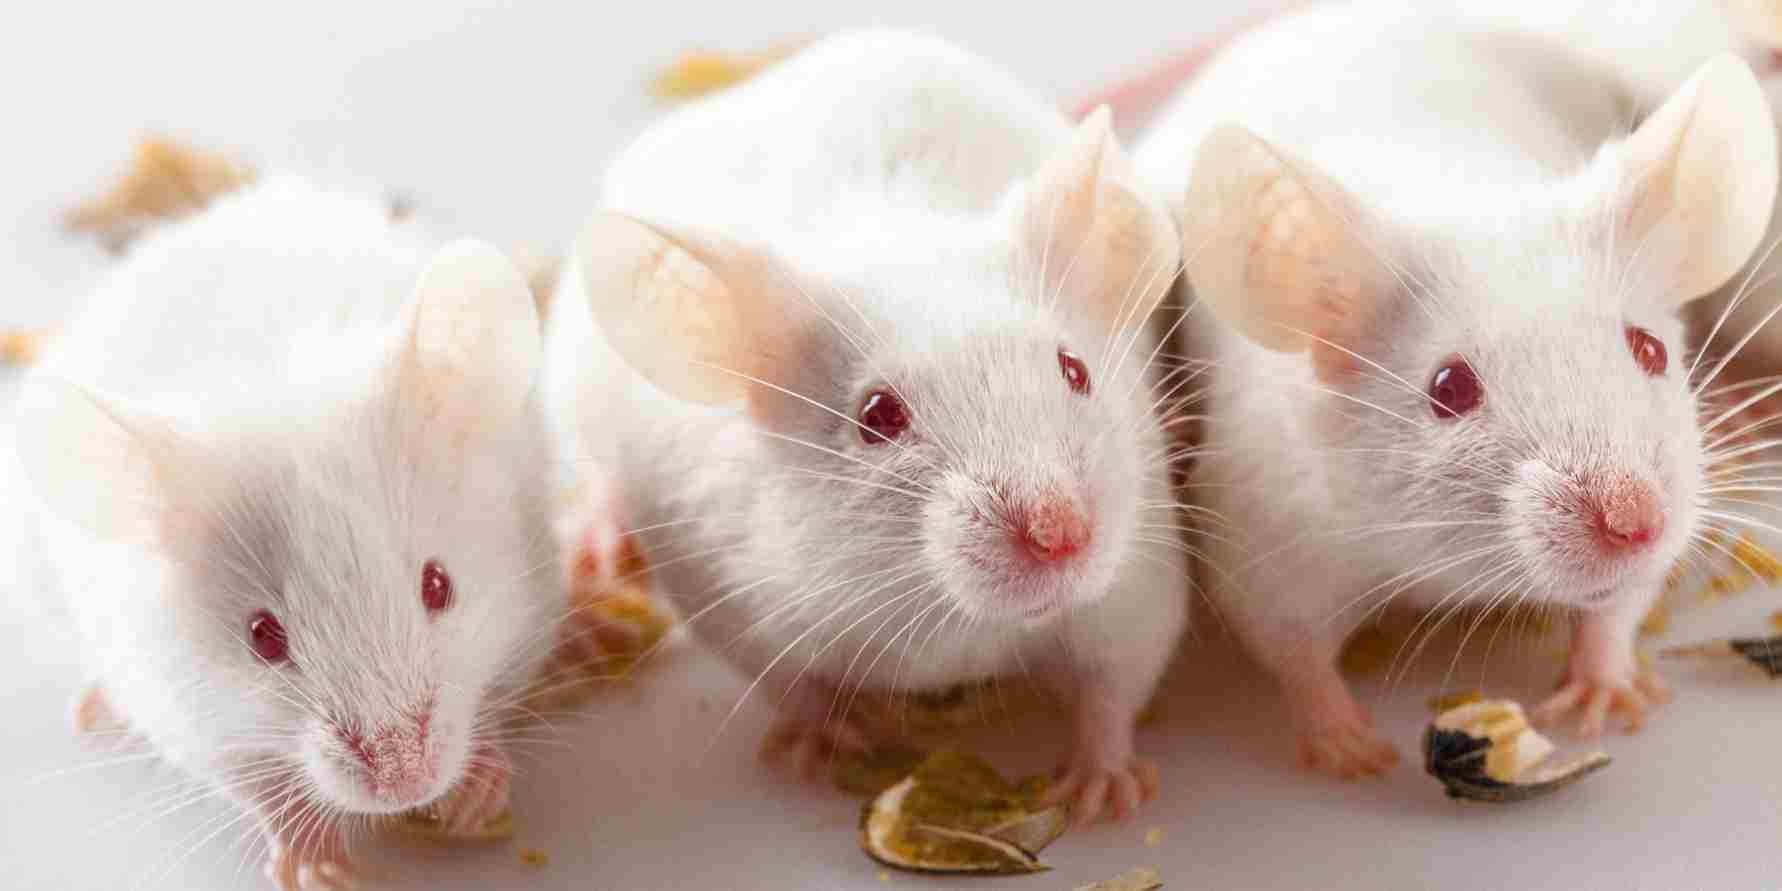 Three old mice, see how they run